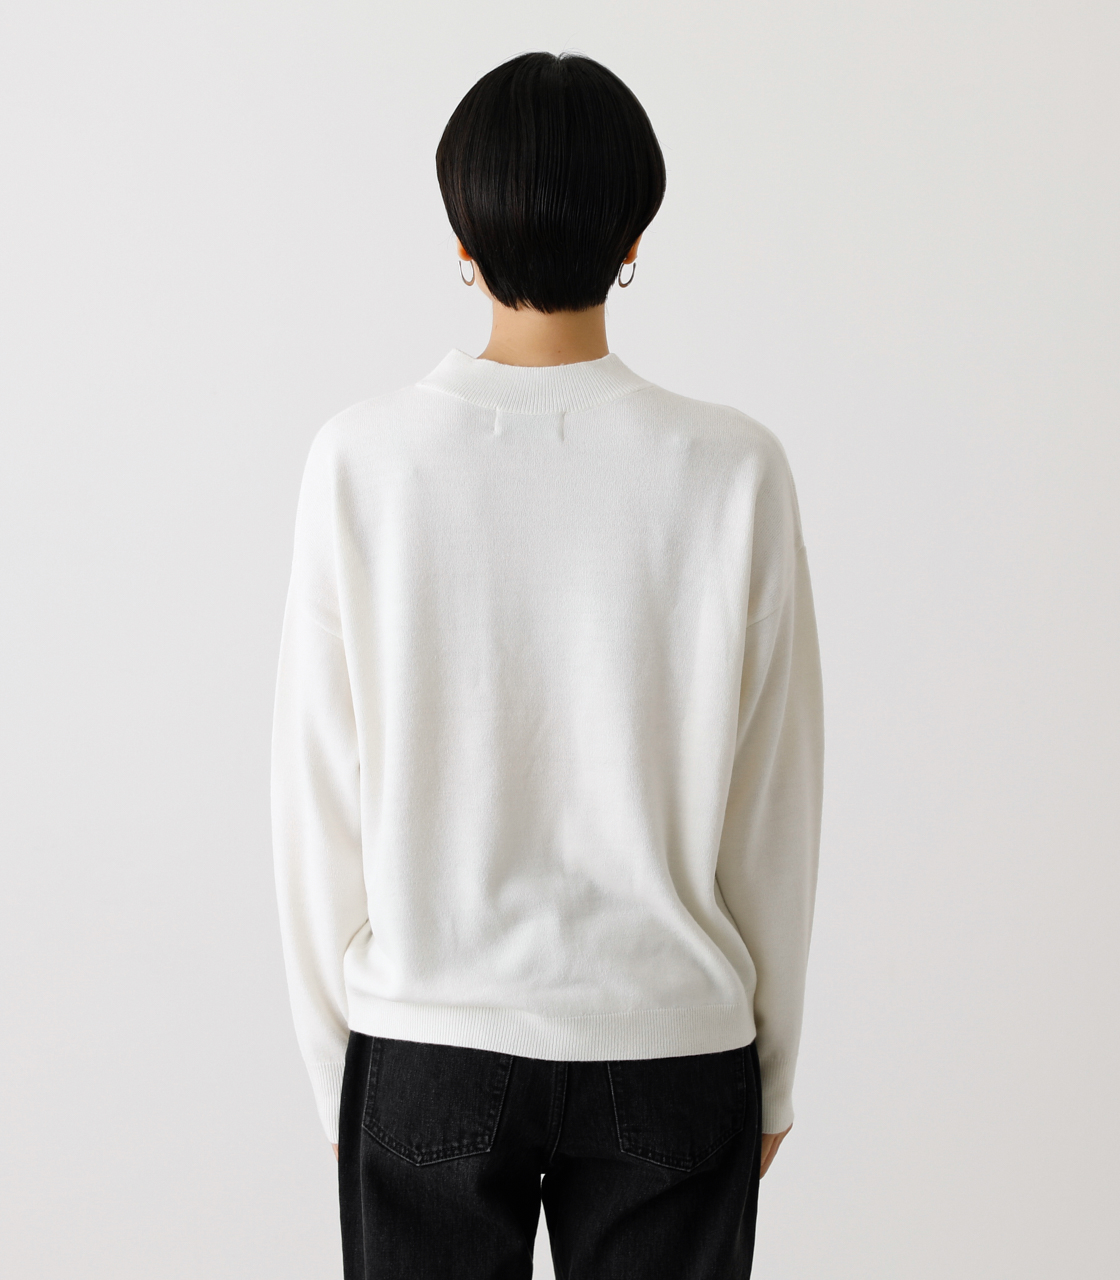 NUDIE H/N KNIT TOPS/ヌーディーハイネックニットトップス【MOOK53掲載 90022】 詳細画像 O/WHT 7